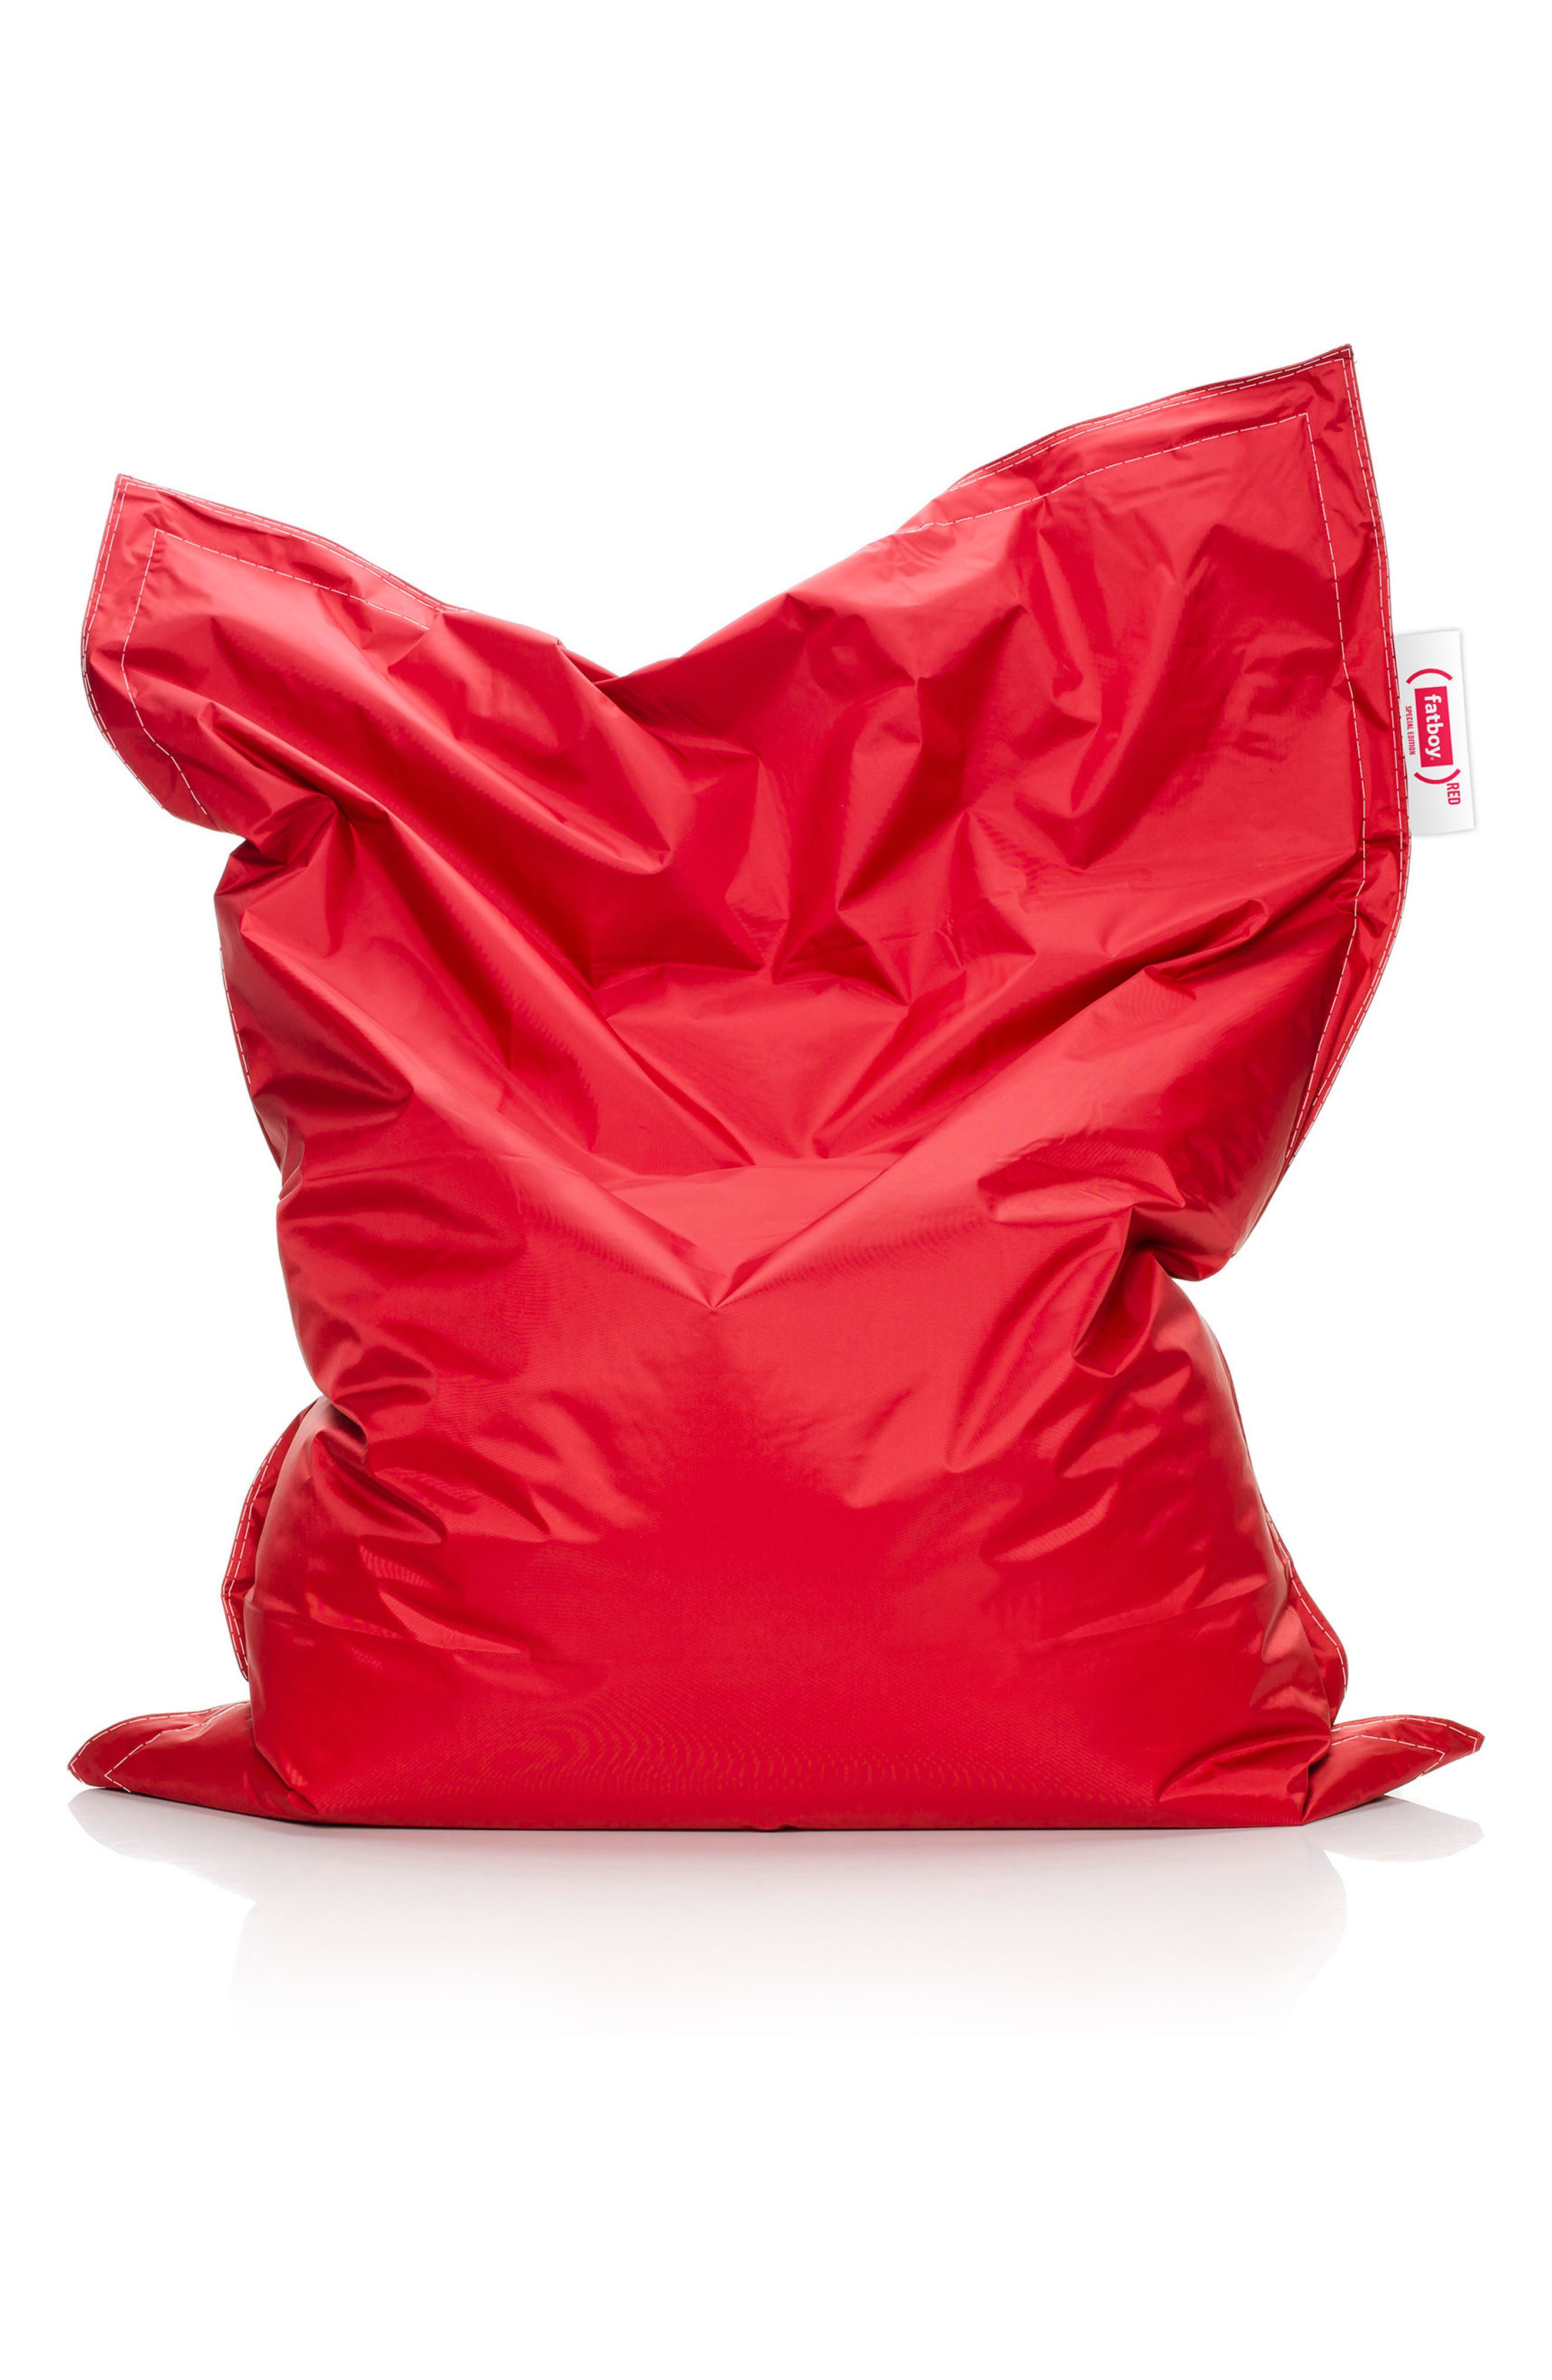 Junior RED Special Edition Beanbag Chair,                             Main thumbnail 1, color,                             Red